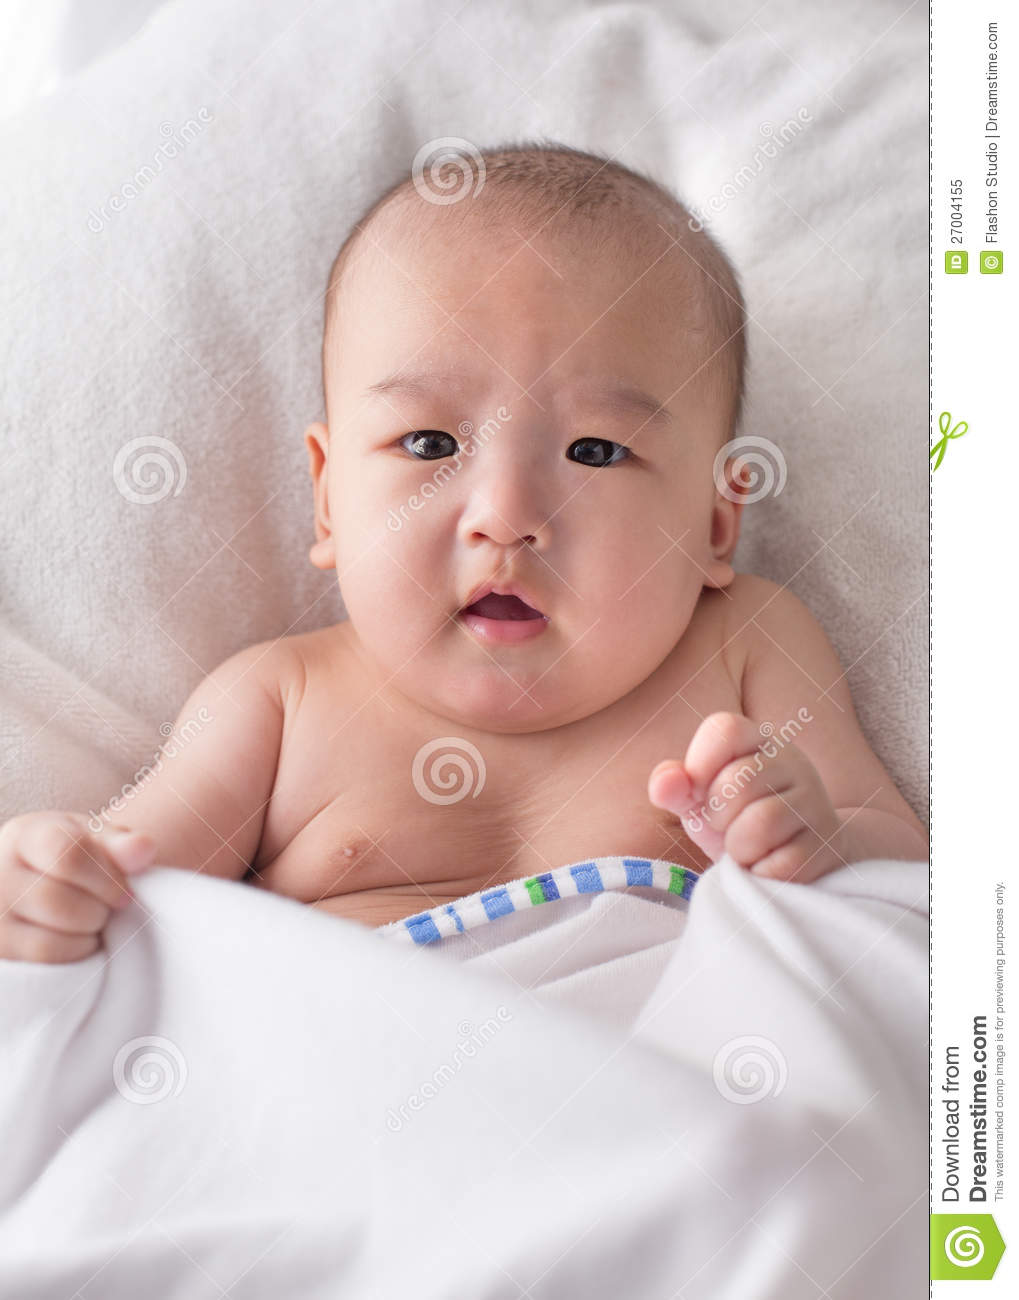 Month old asian baby boy after bath royalty free stock photo image